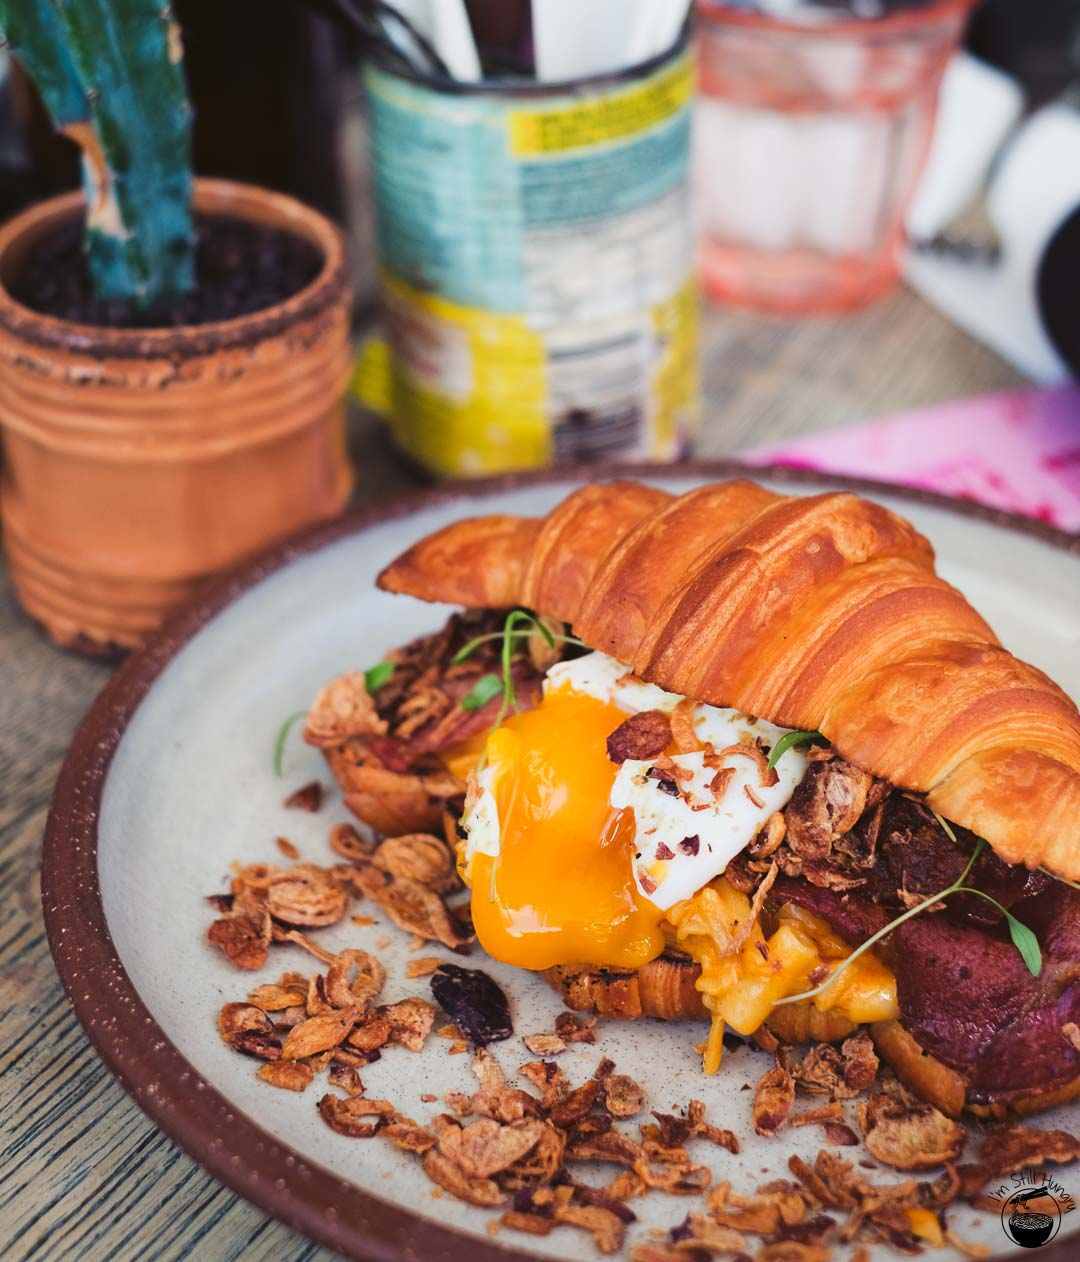 The Bacon Mac Daddy: double smoked bacon, bacon mac 'n' cheese, 63C egg, tomato relish & fried shallots in a croissant